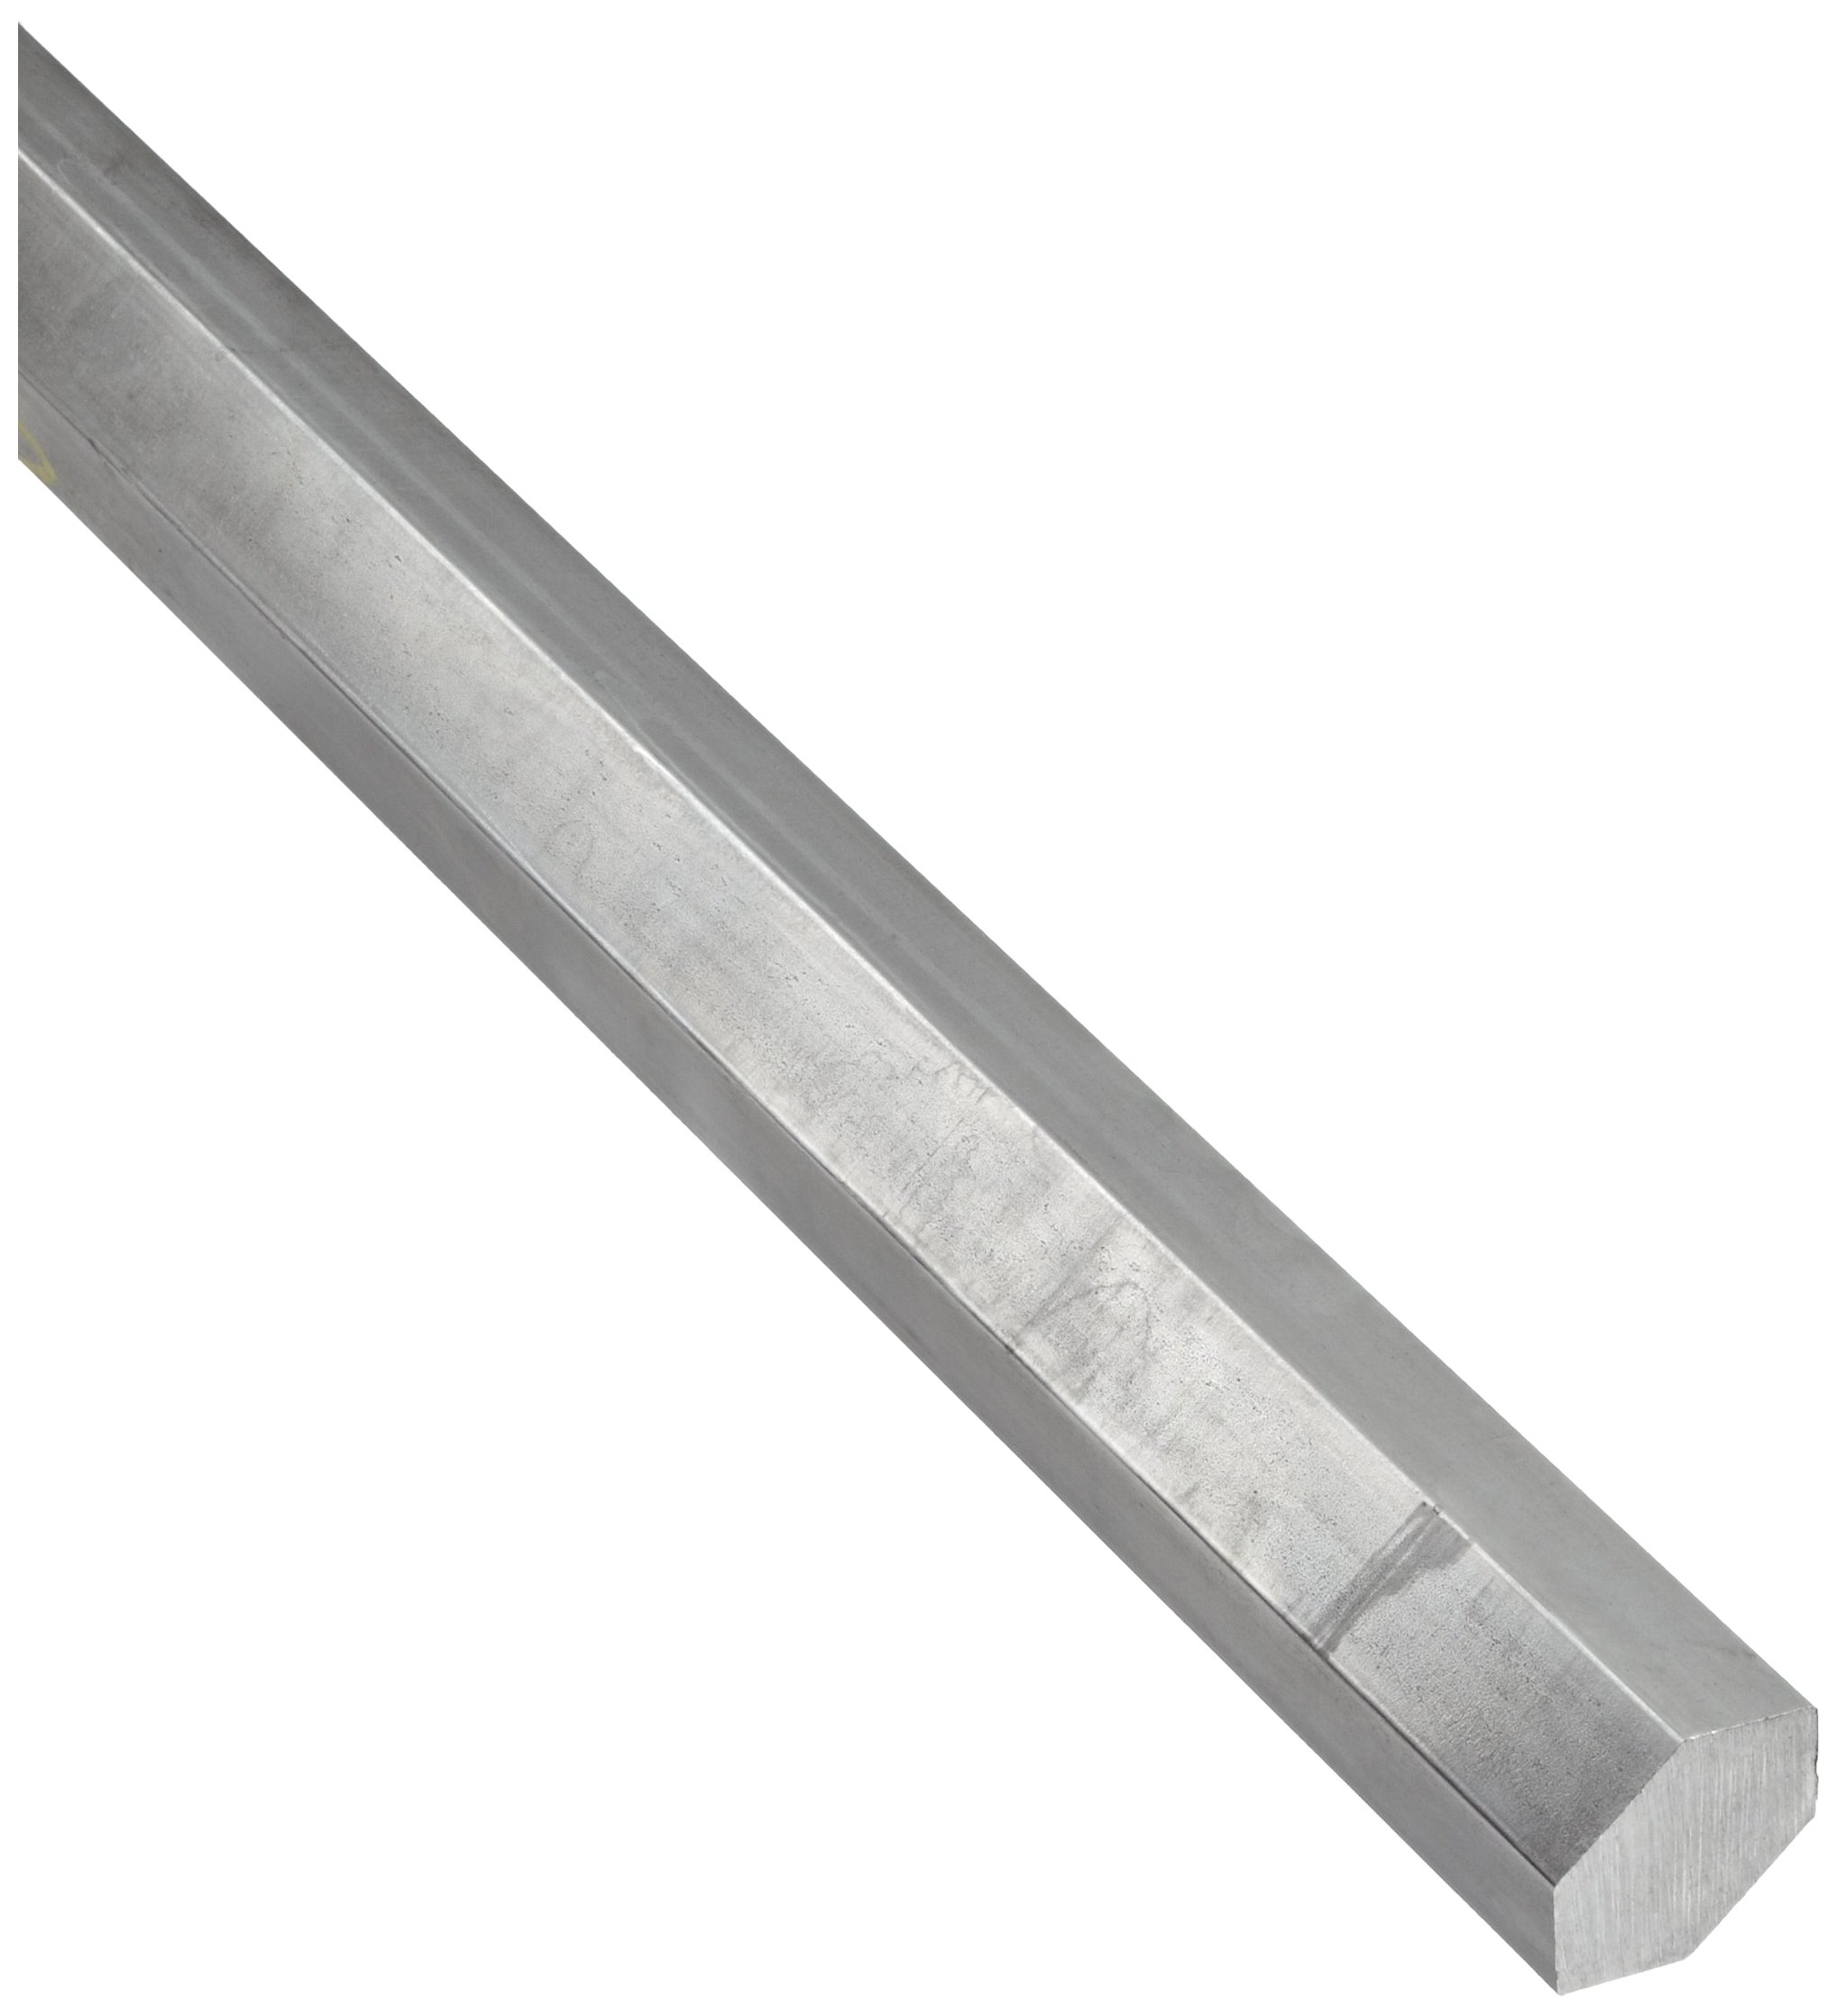 316L Stainless Steel Hex Bar, Unpolished (Mill) Finish 7/16'' Across Flats, 36'' Length by Small Parts